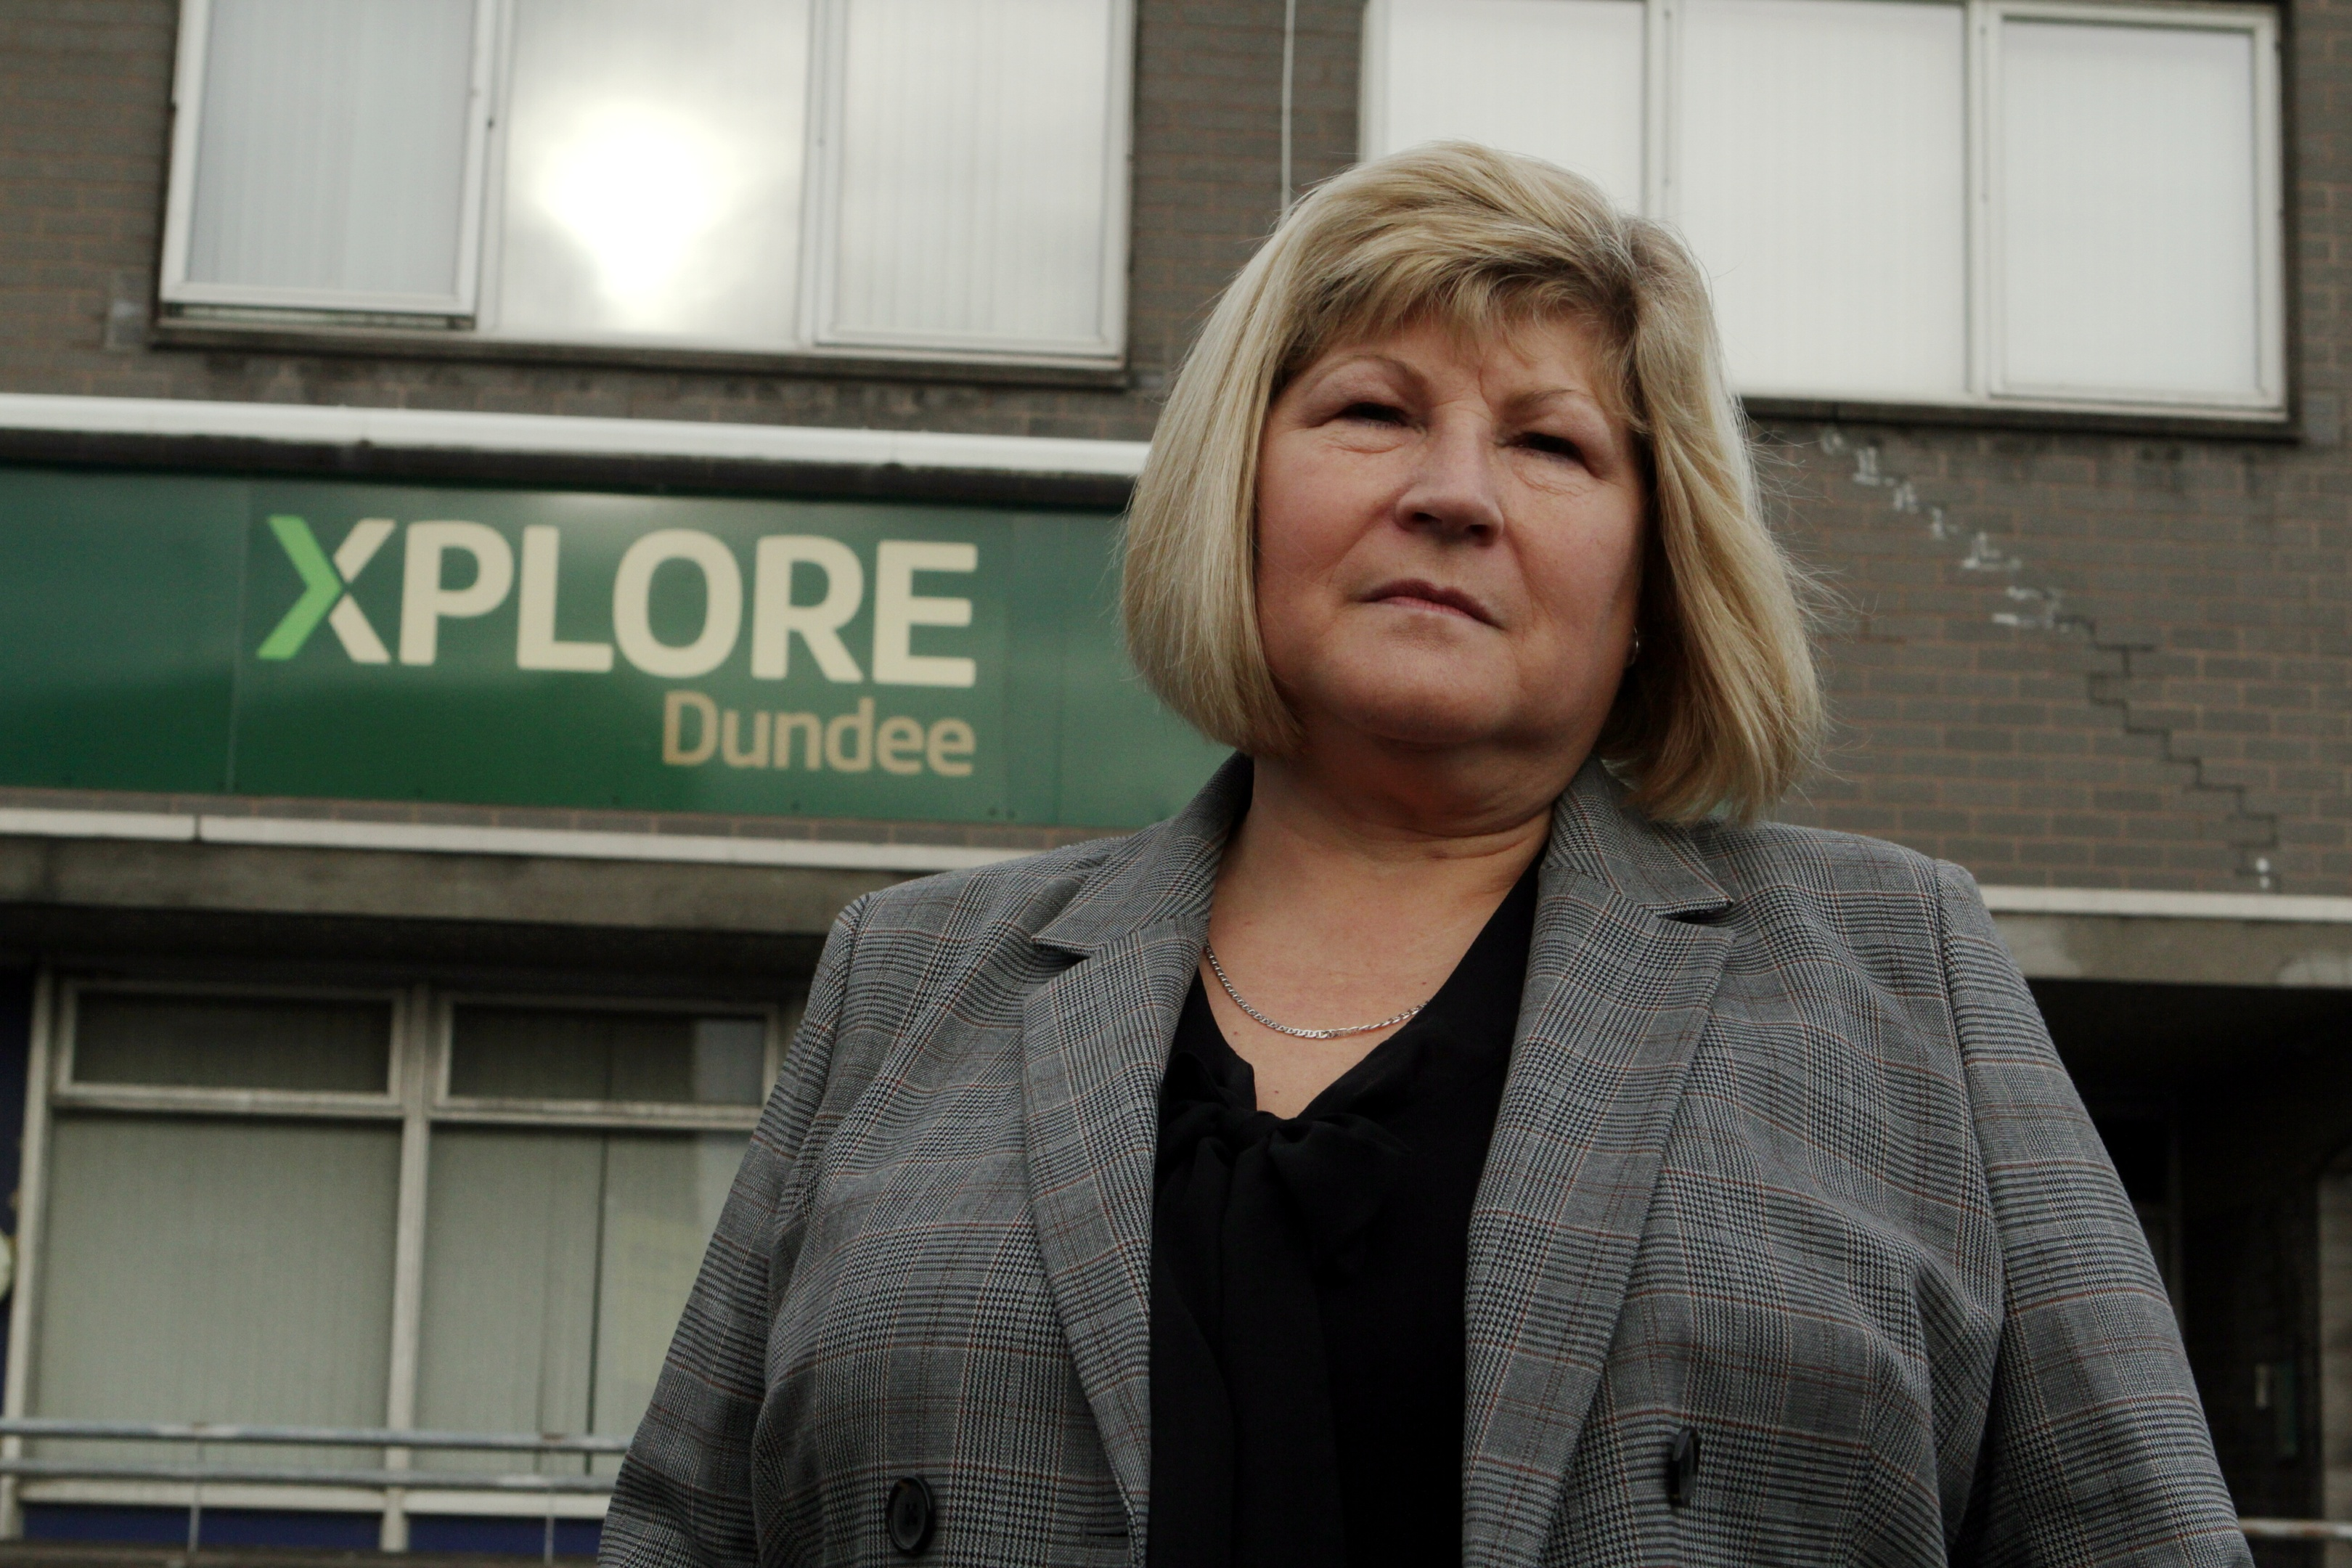 Elsie Turbyne Managing Director at Xplore Dundee